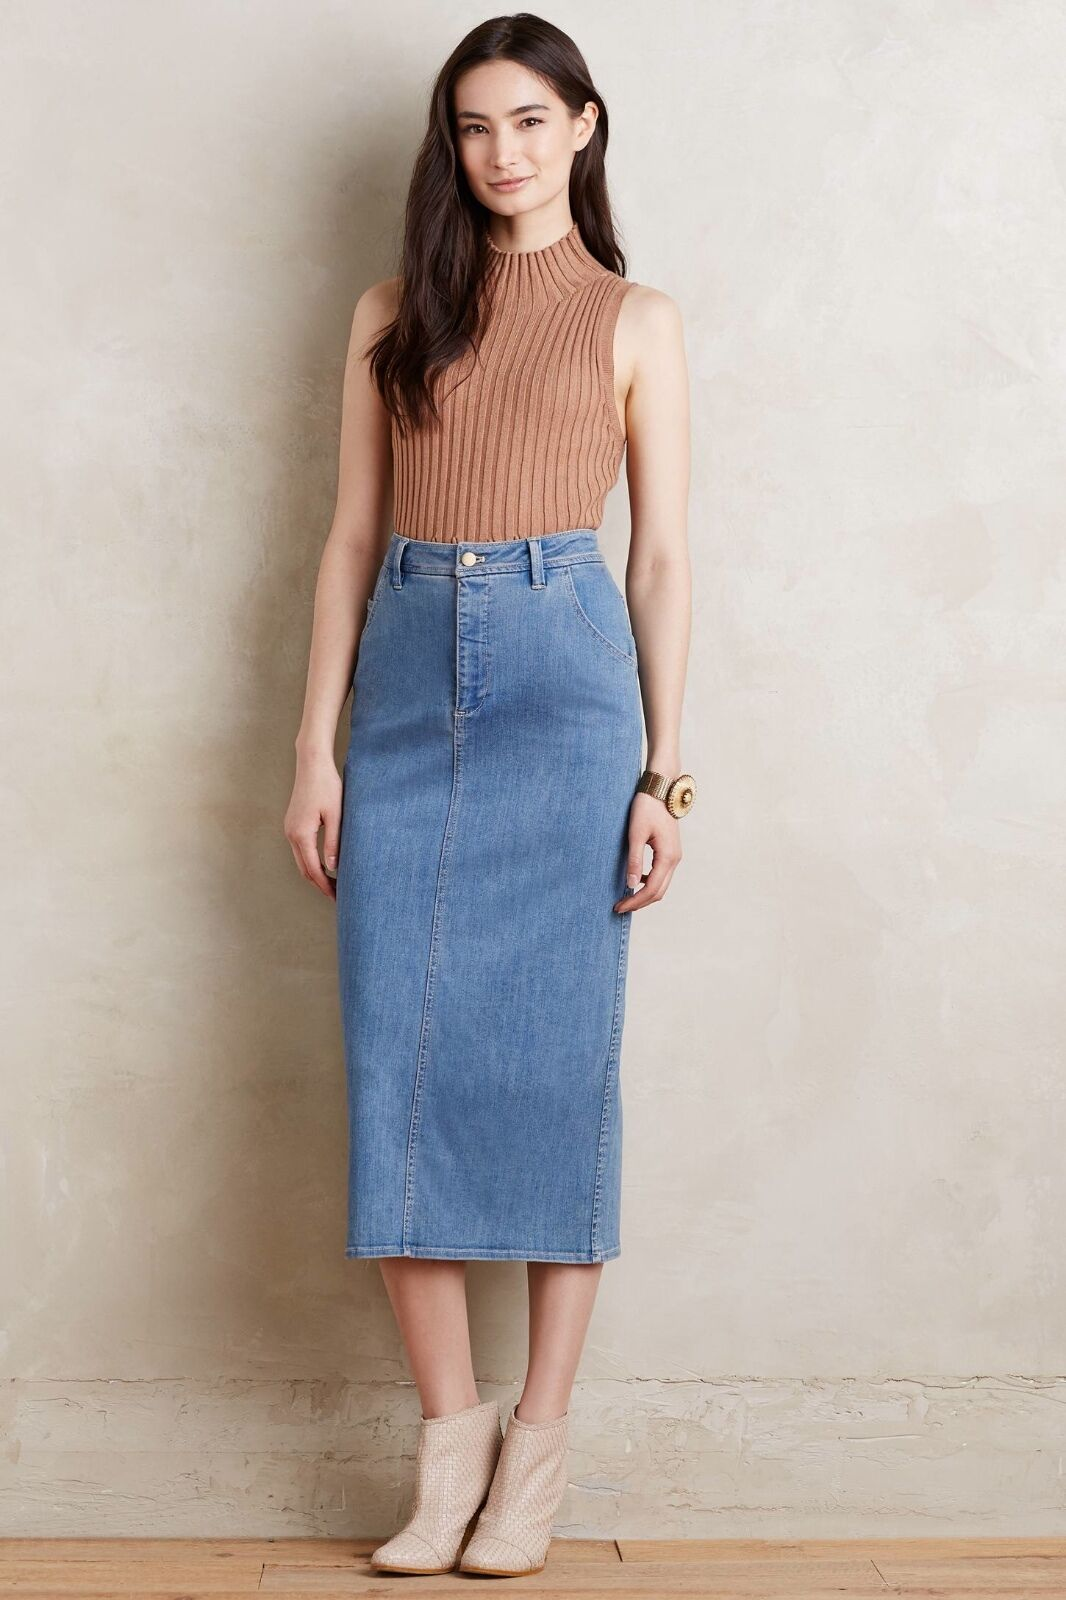 NWT Anthropologie Pomona Denim Midi Skirt by Holding Horses Sz 4, 5 REVIEW